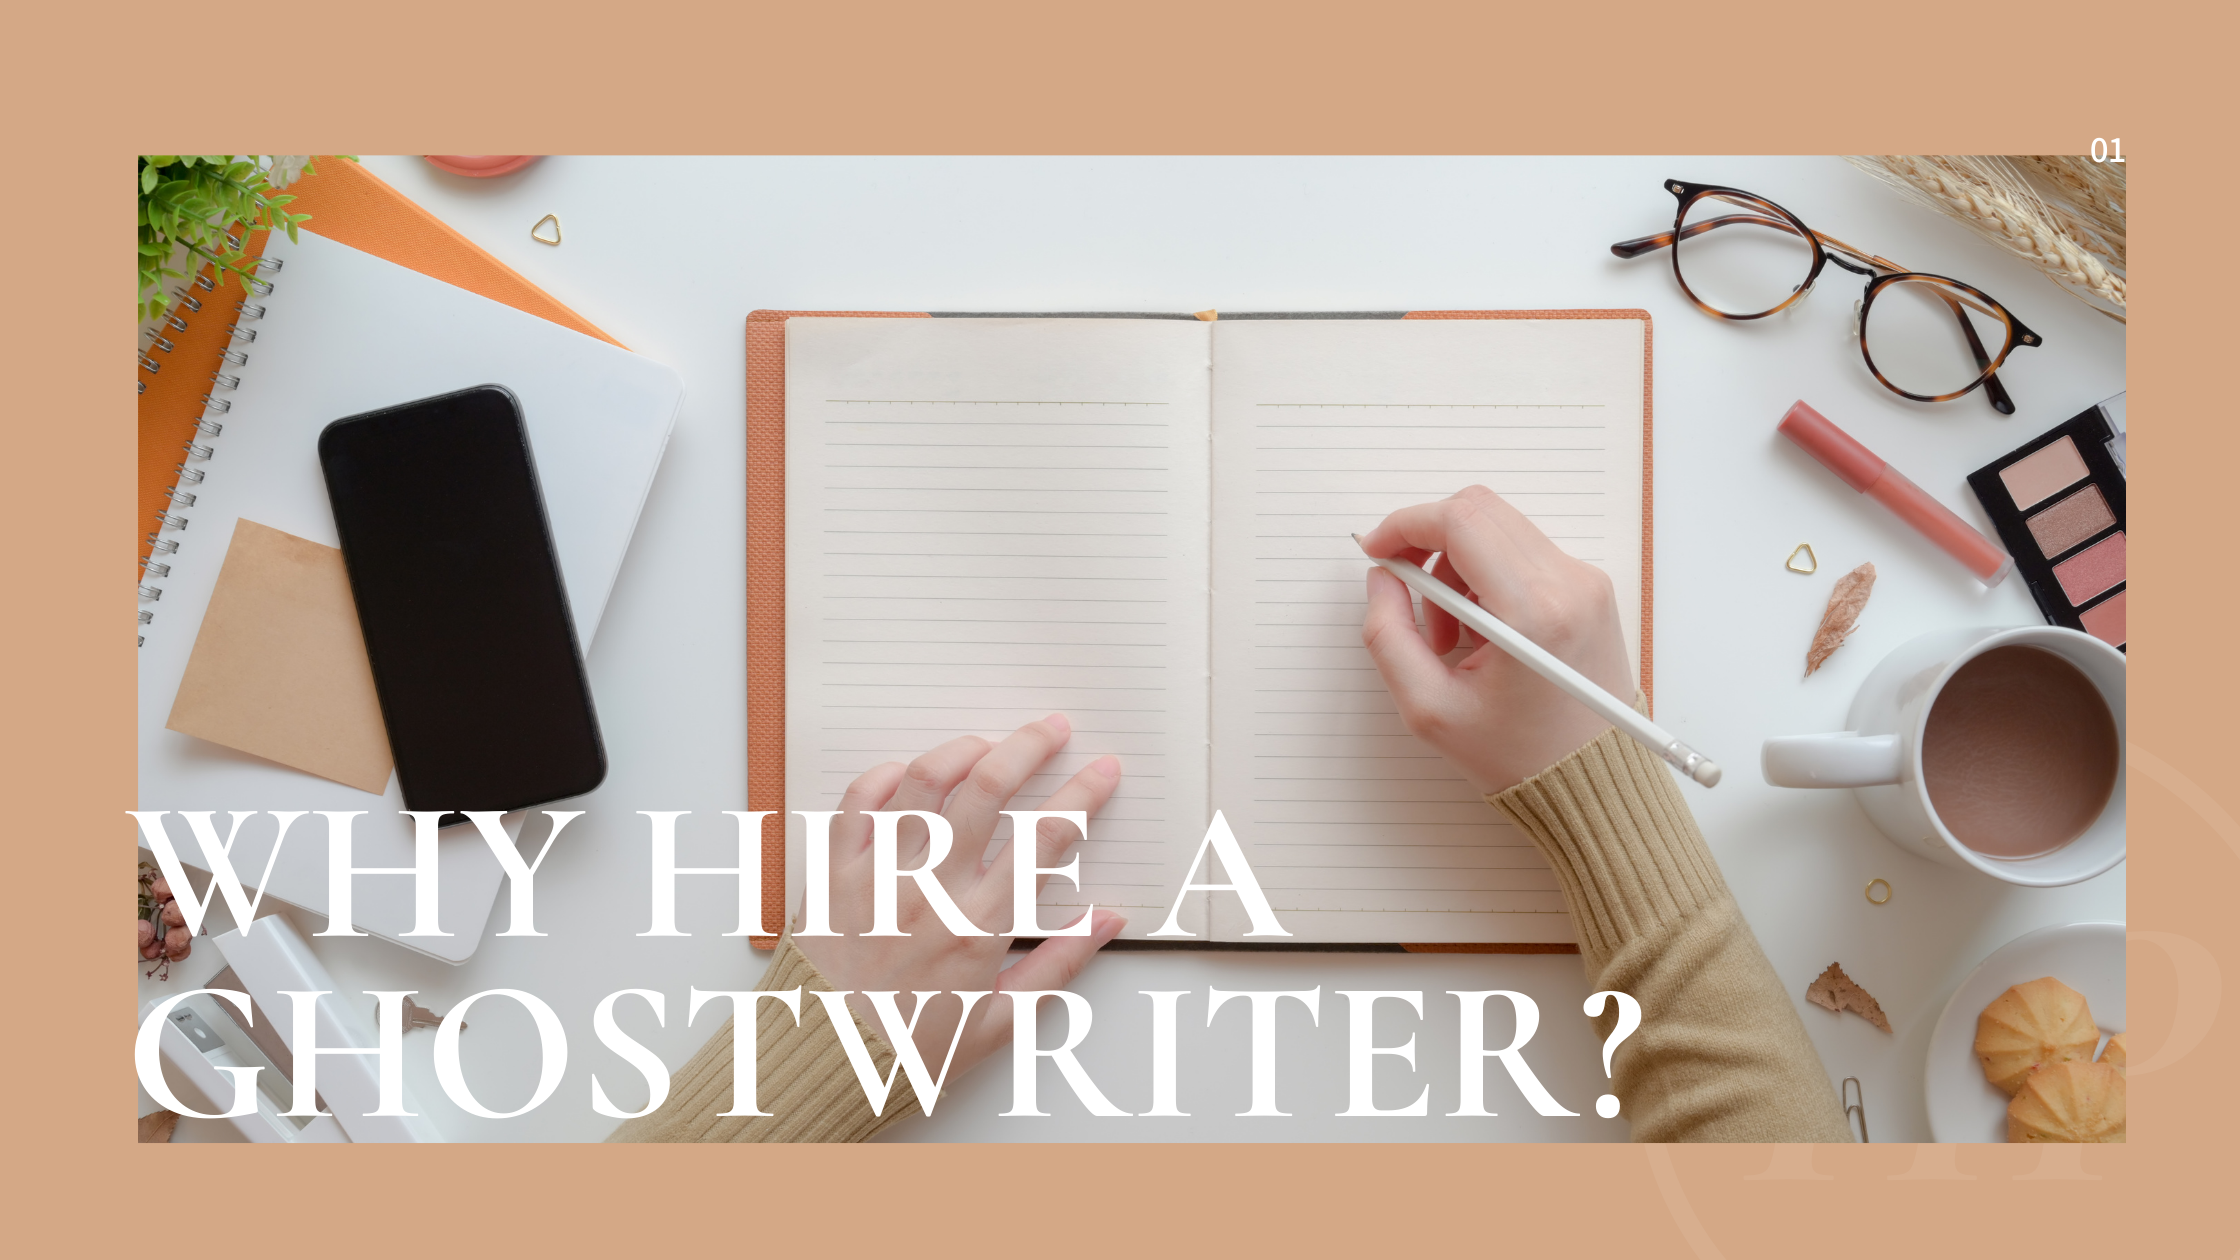 Guest Post: Why Hire a Ghostwriter? To Get Your Book Finished